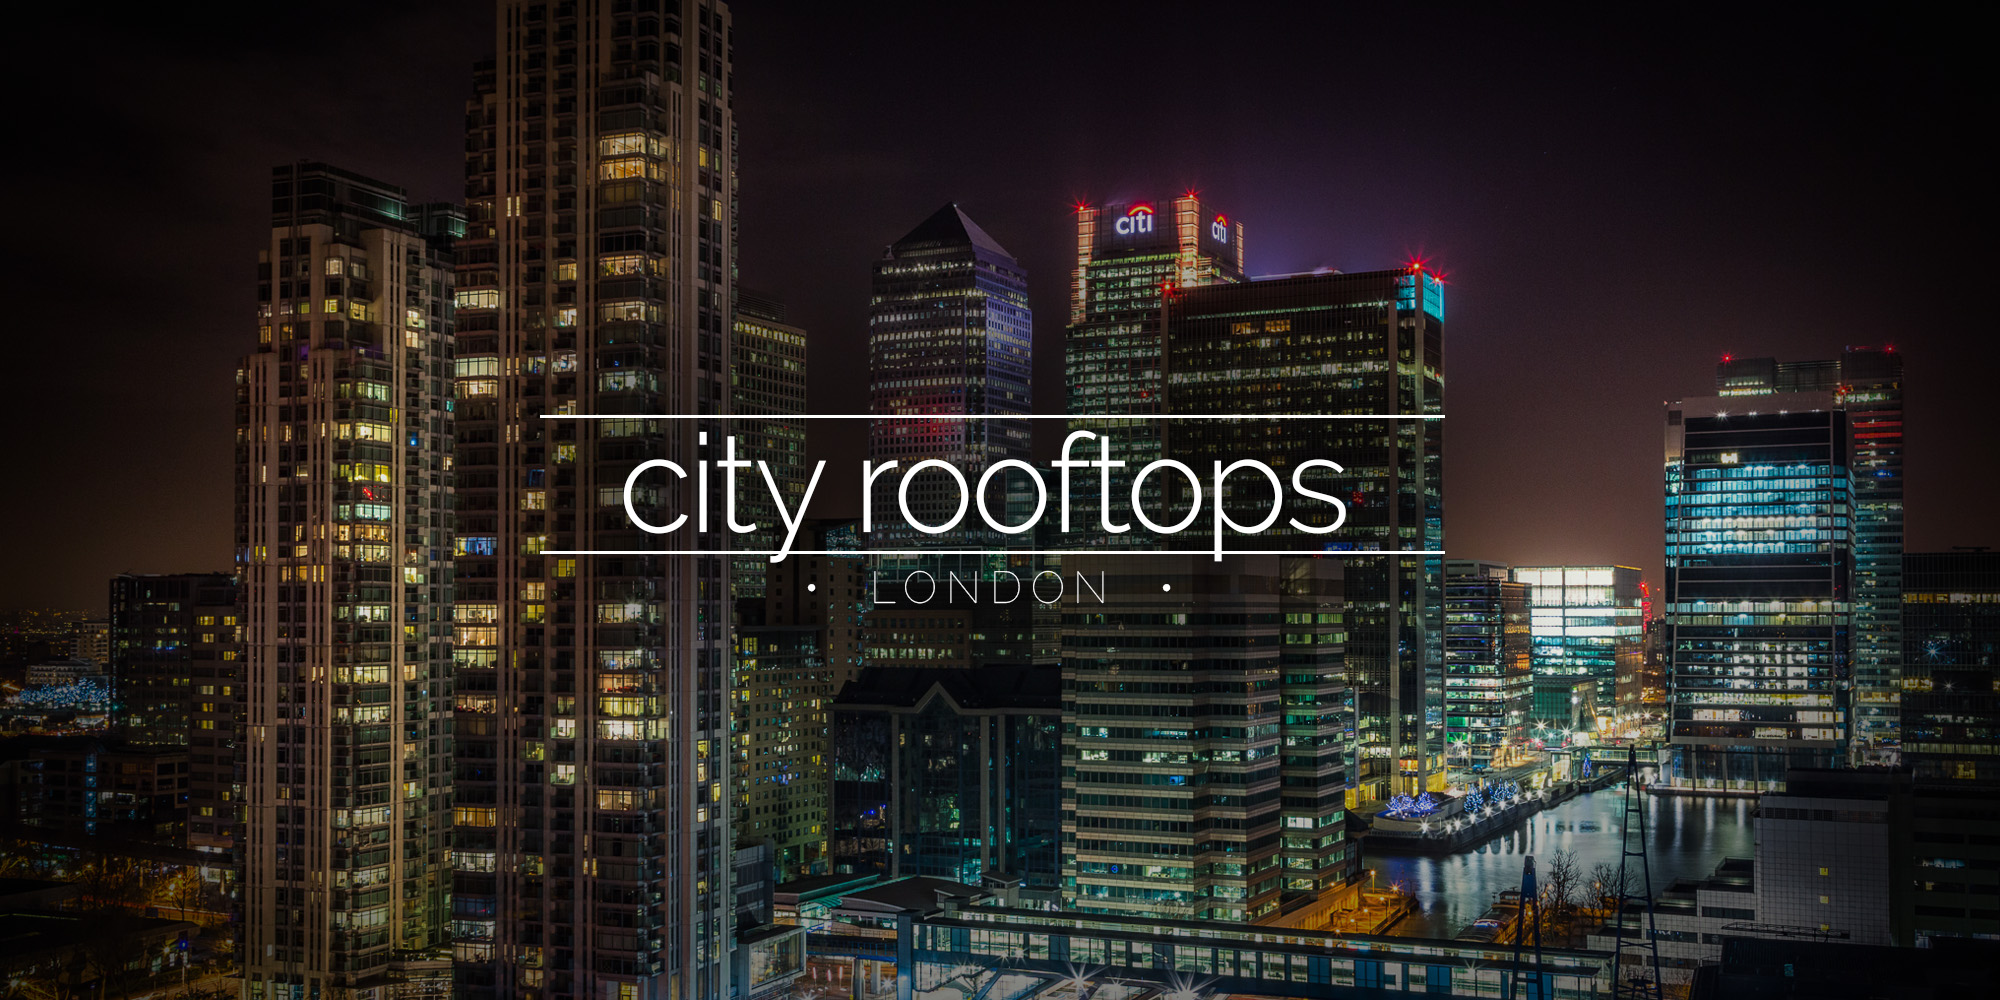 London City Rooftops January 2015